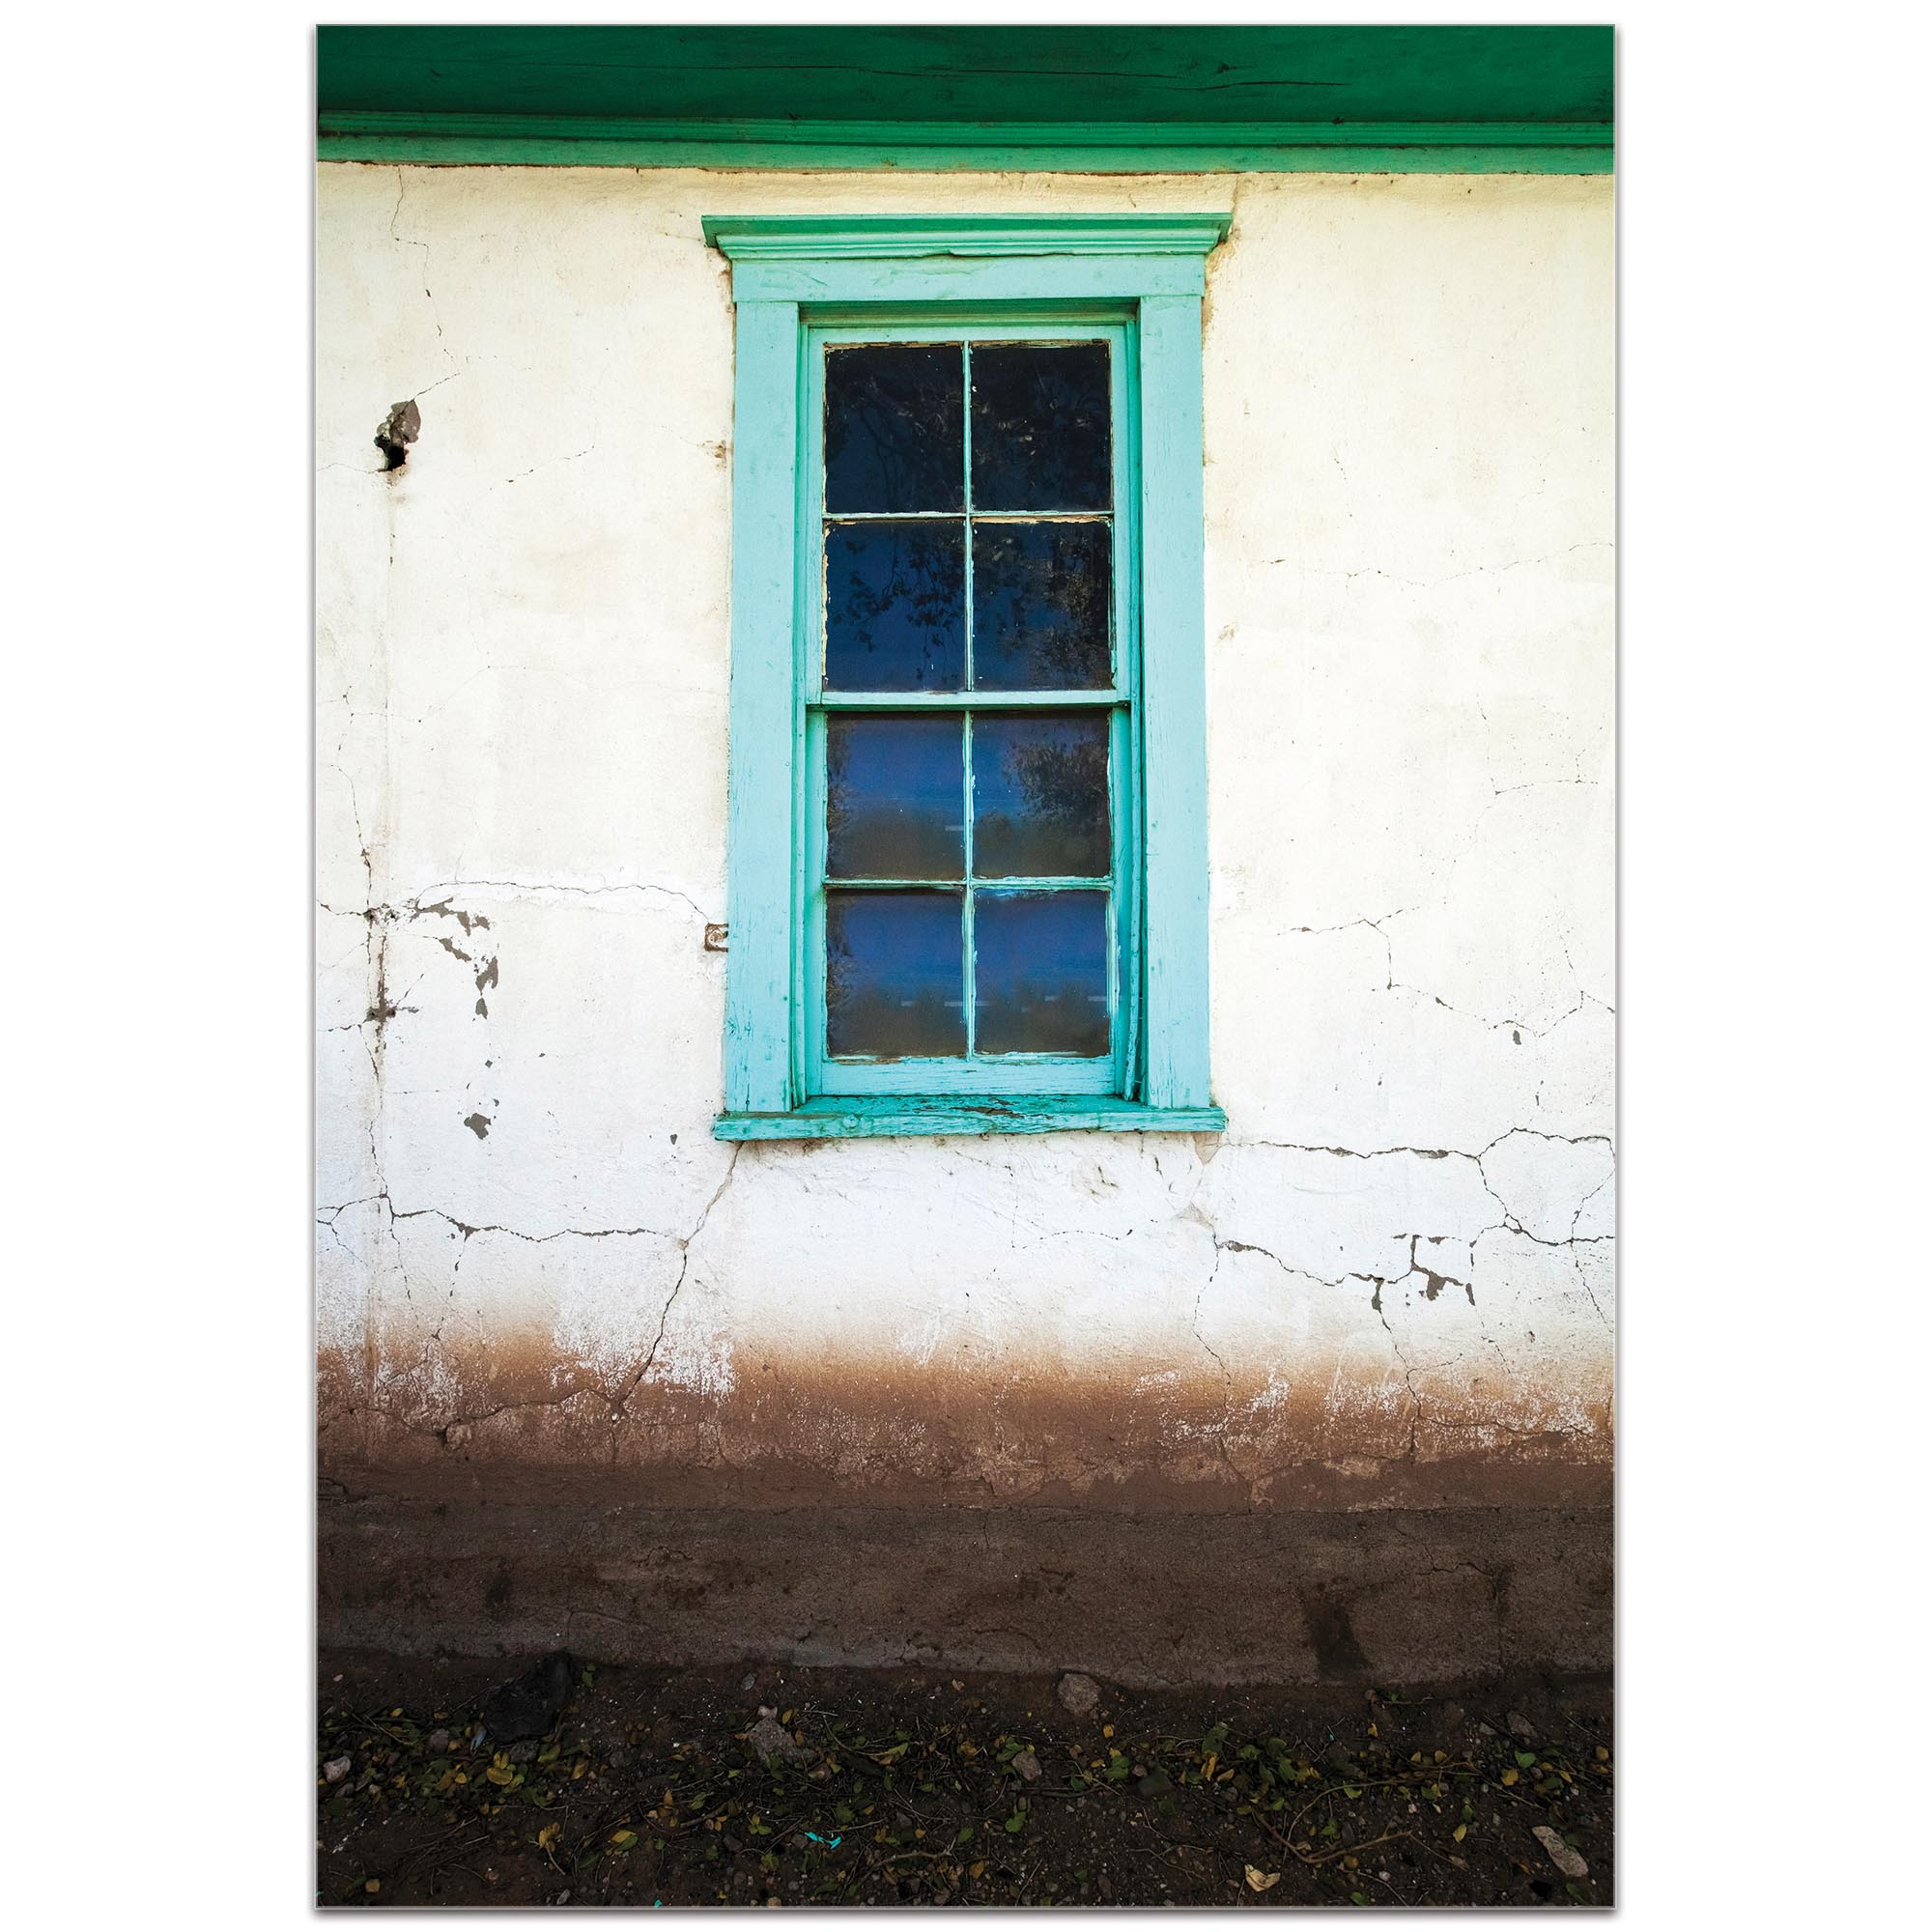 Eclectic Wall Art 'Bay Window' - Architecture Decor on Metal or Plexiglass - Image 2